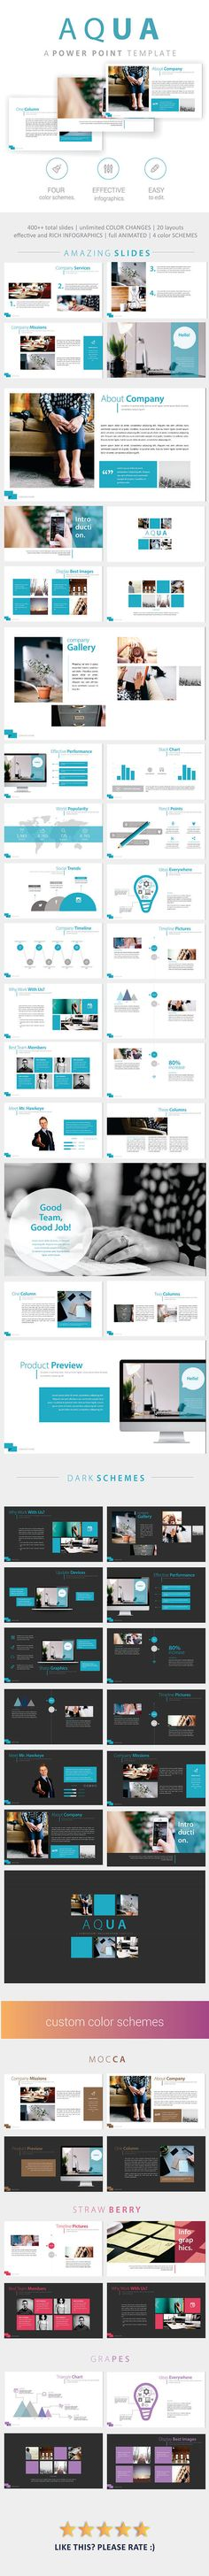 Aqua PowerPoint Presentation Template #design #slides Download: http://graphicriver.net/item/aqua-powerpoint-template/14017787?ref=ksioks